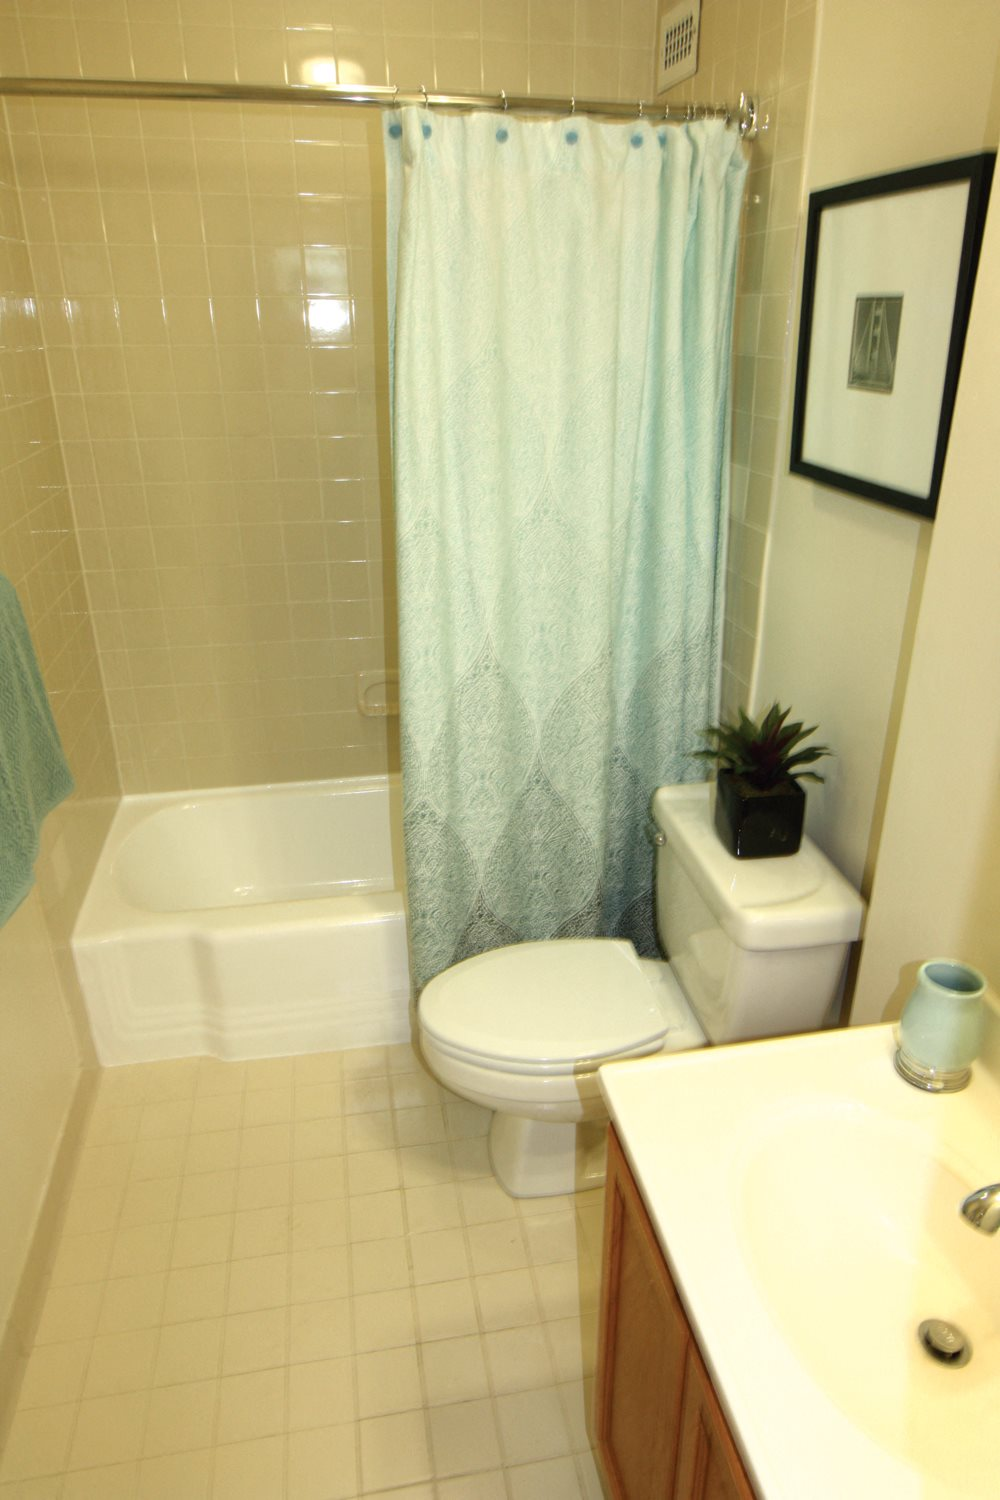 Spacious Bathrooms With Ceramic Tile Flooring at Calvert House